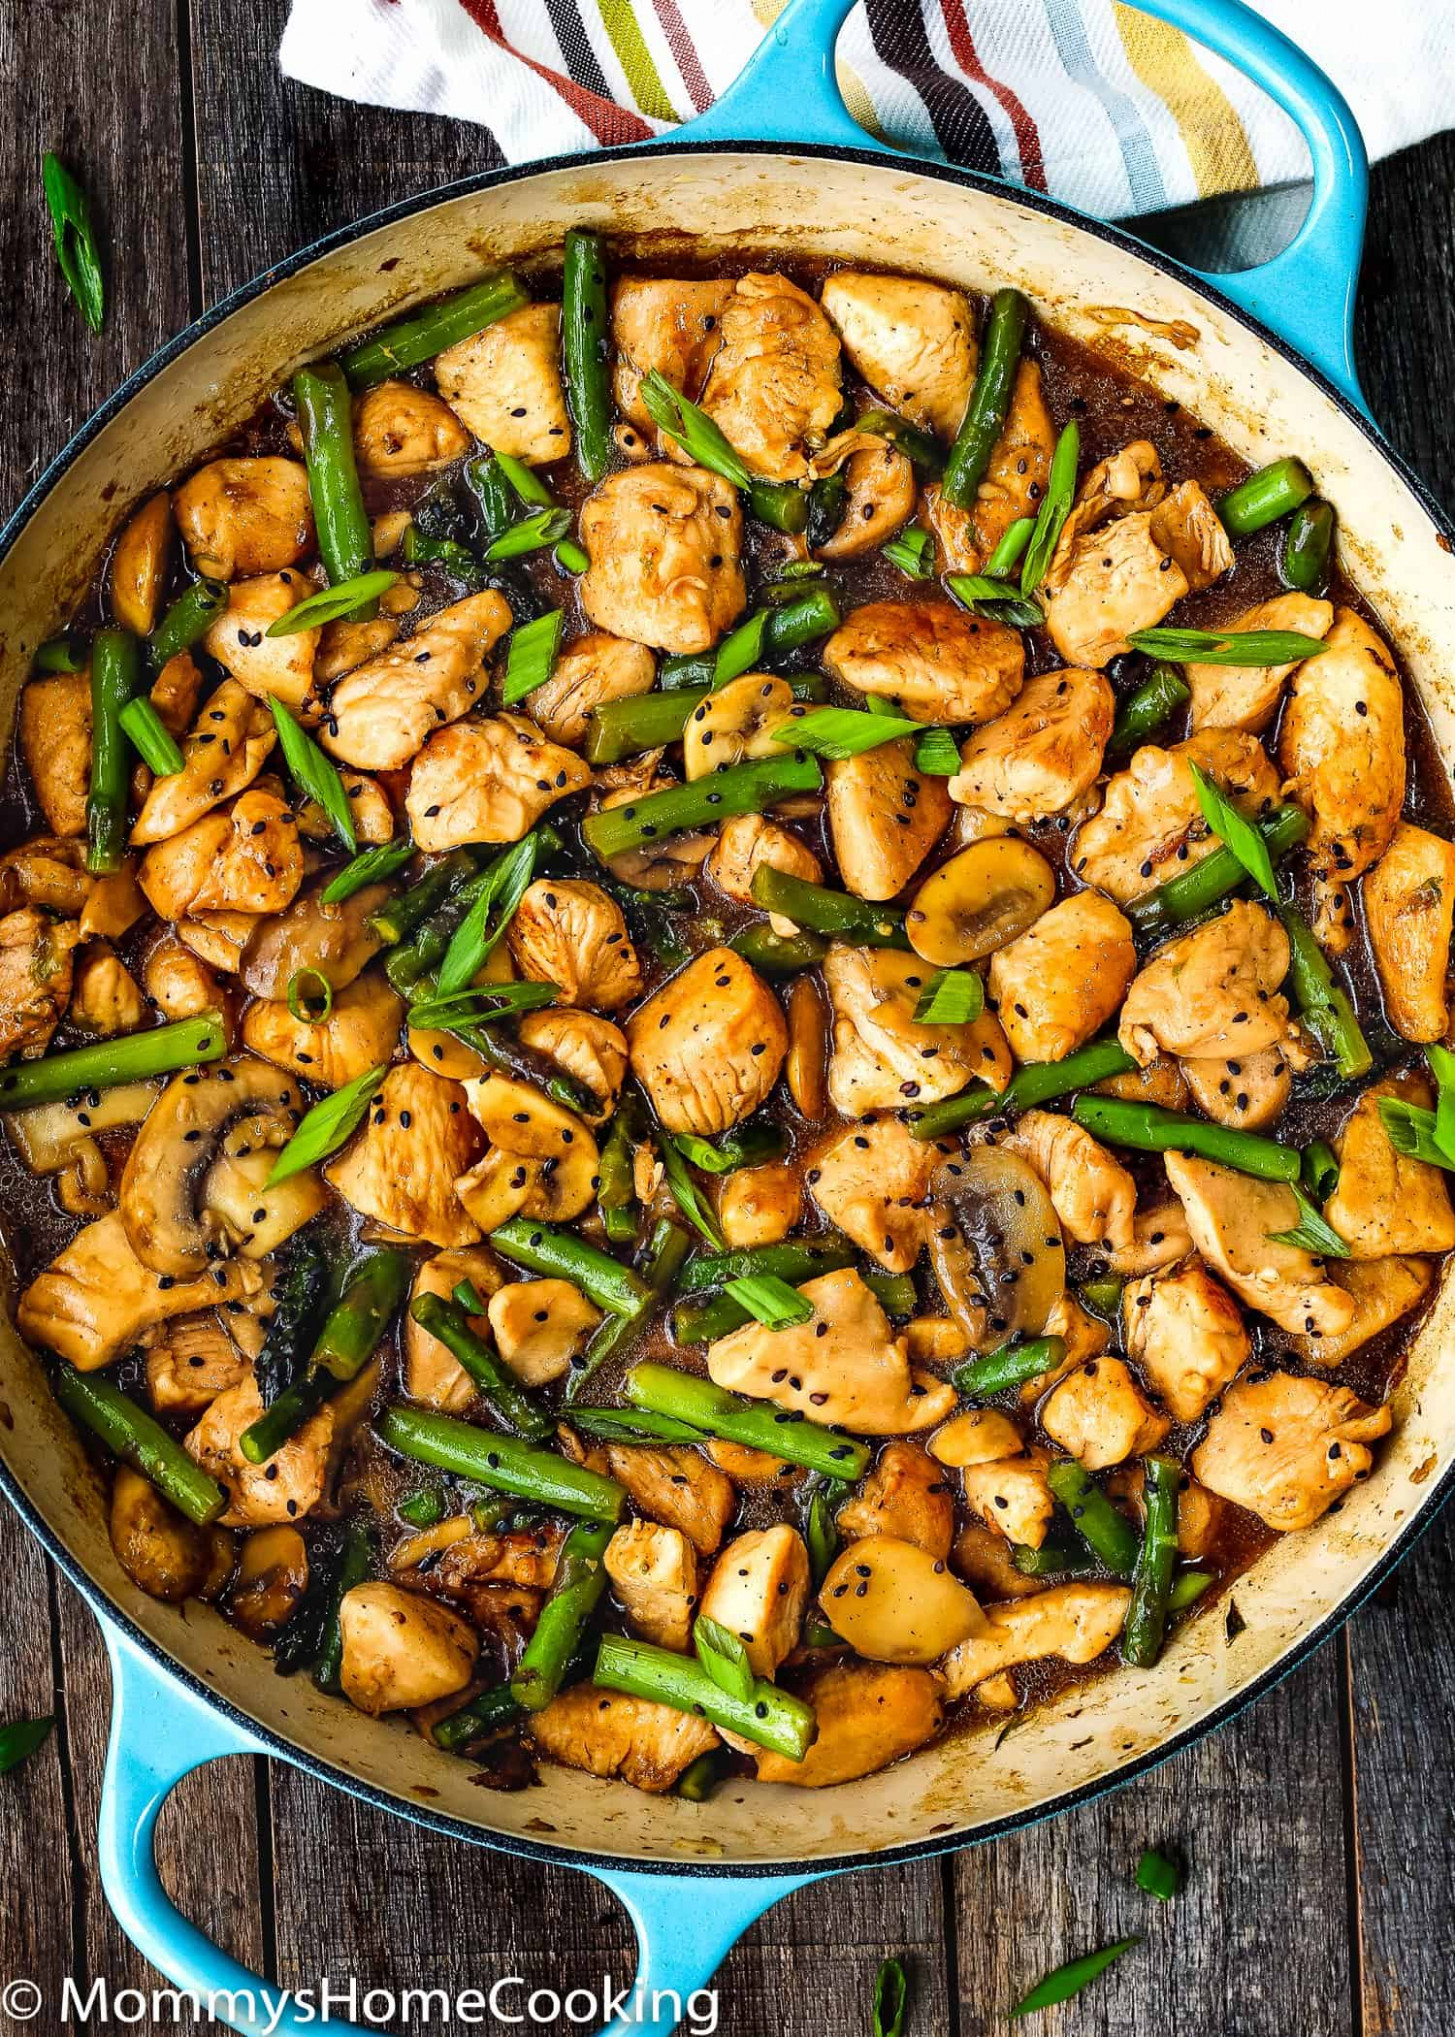 Easy Healthy Chicken and Asparagus Skillet - chicken recipes quick and tasty